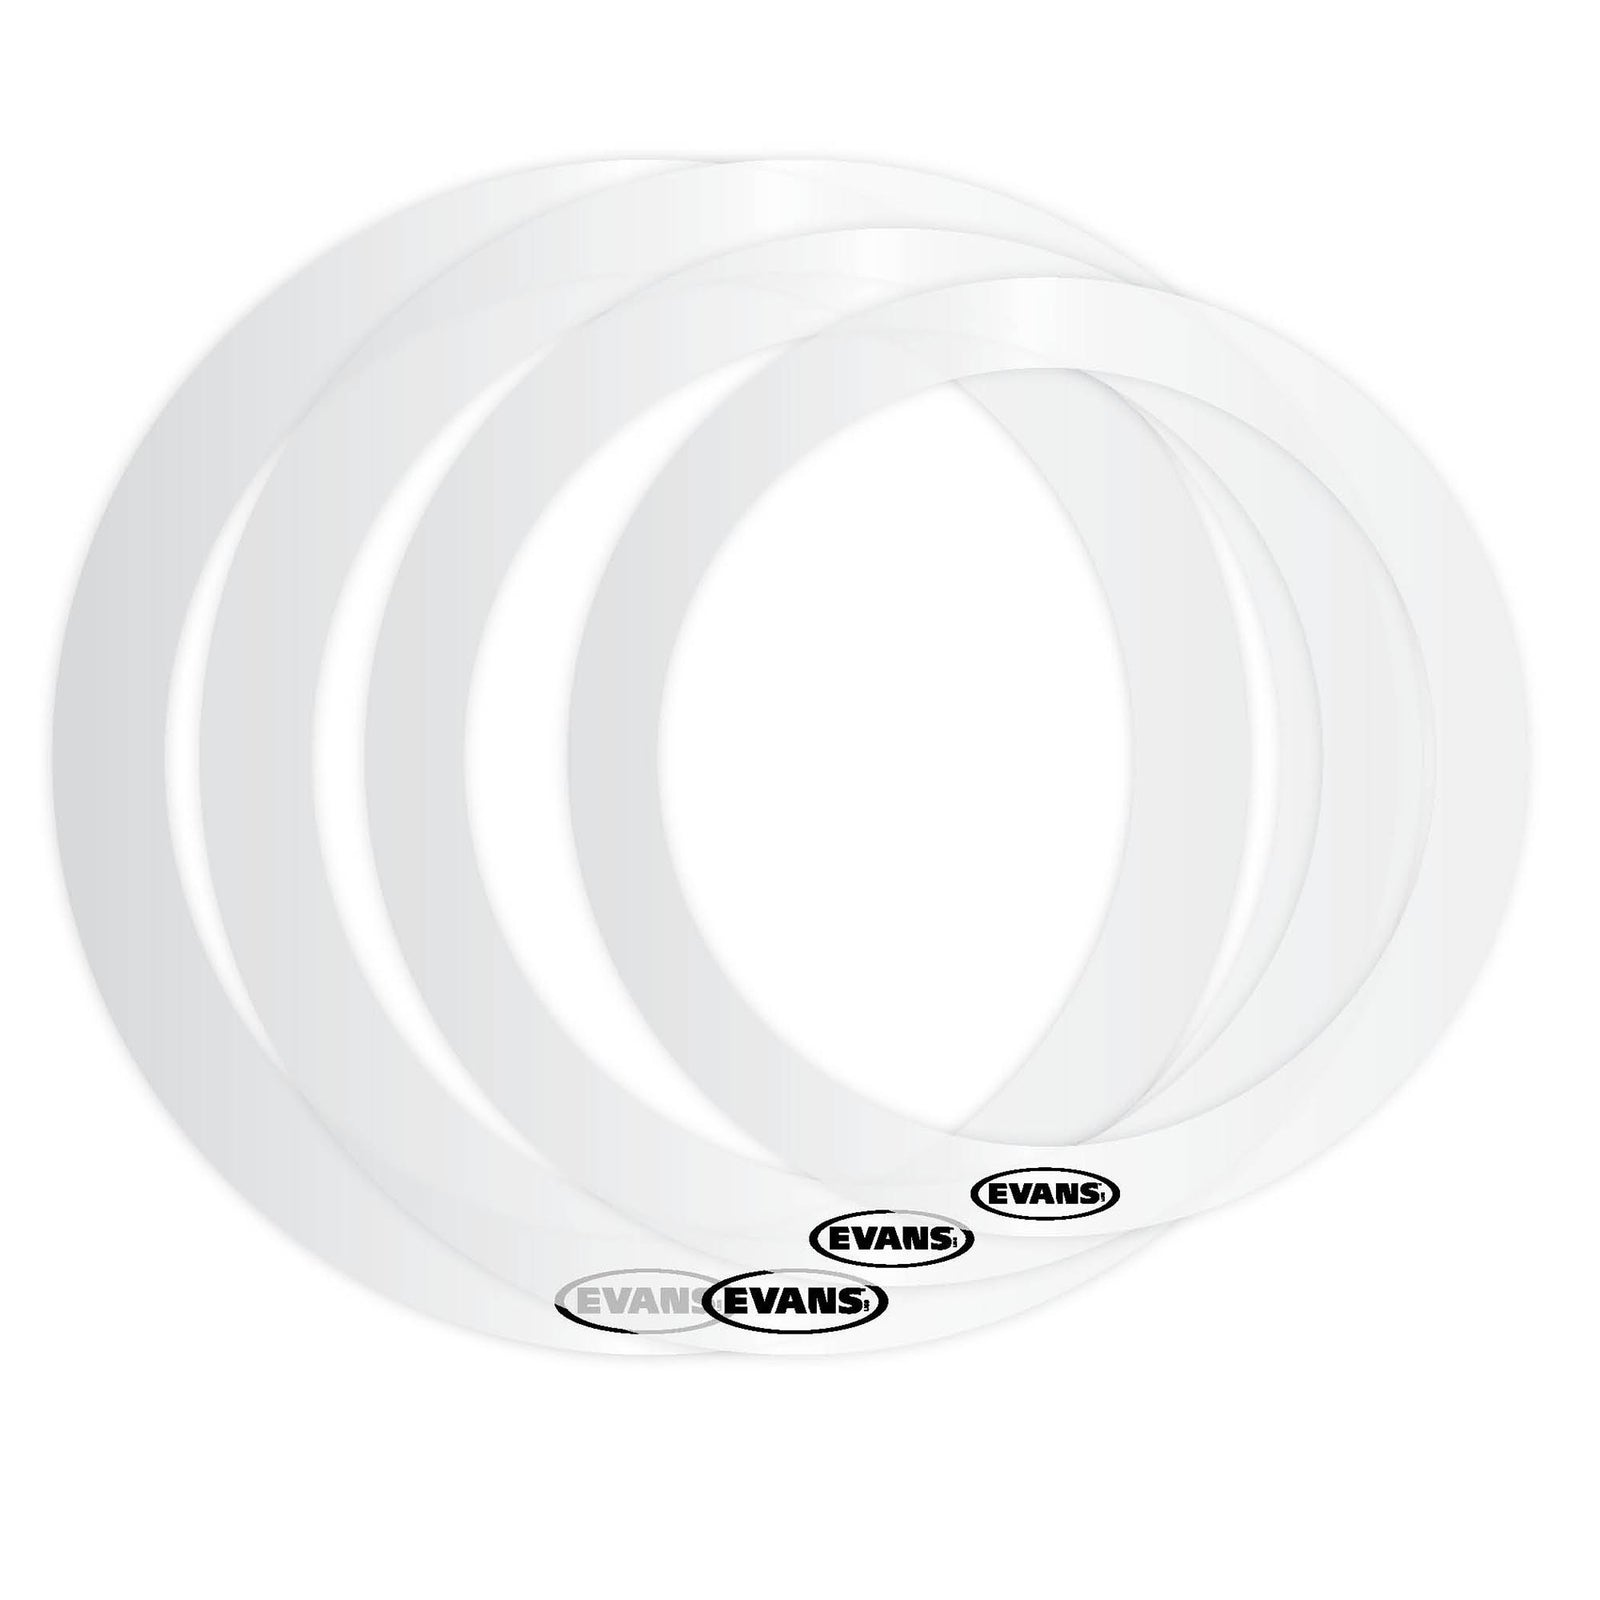 "Evans 10"", 12"", 14"", 14"", Fusion Ring Pack"